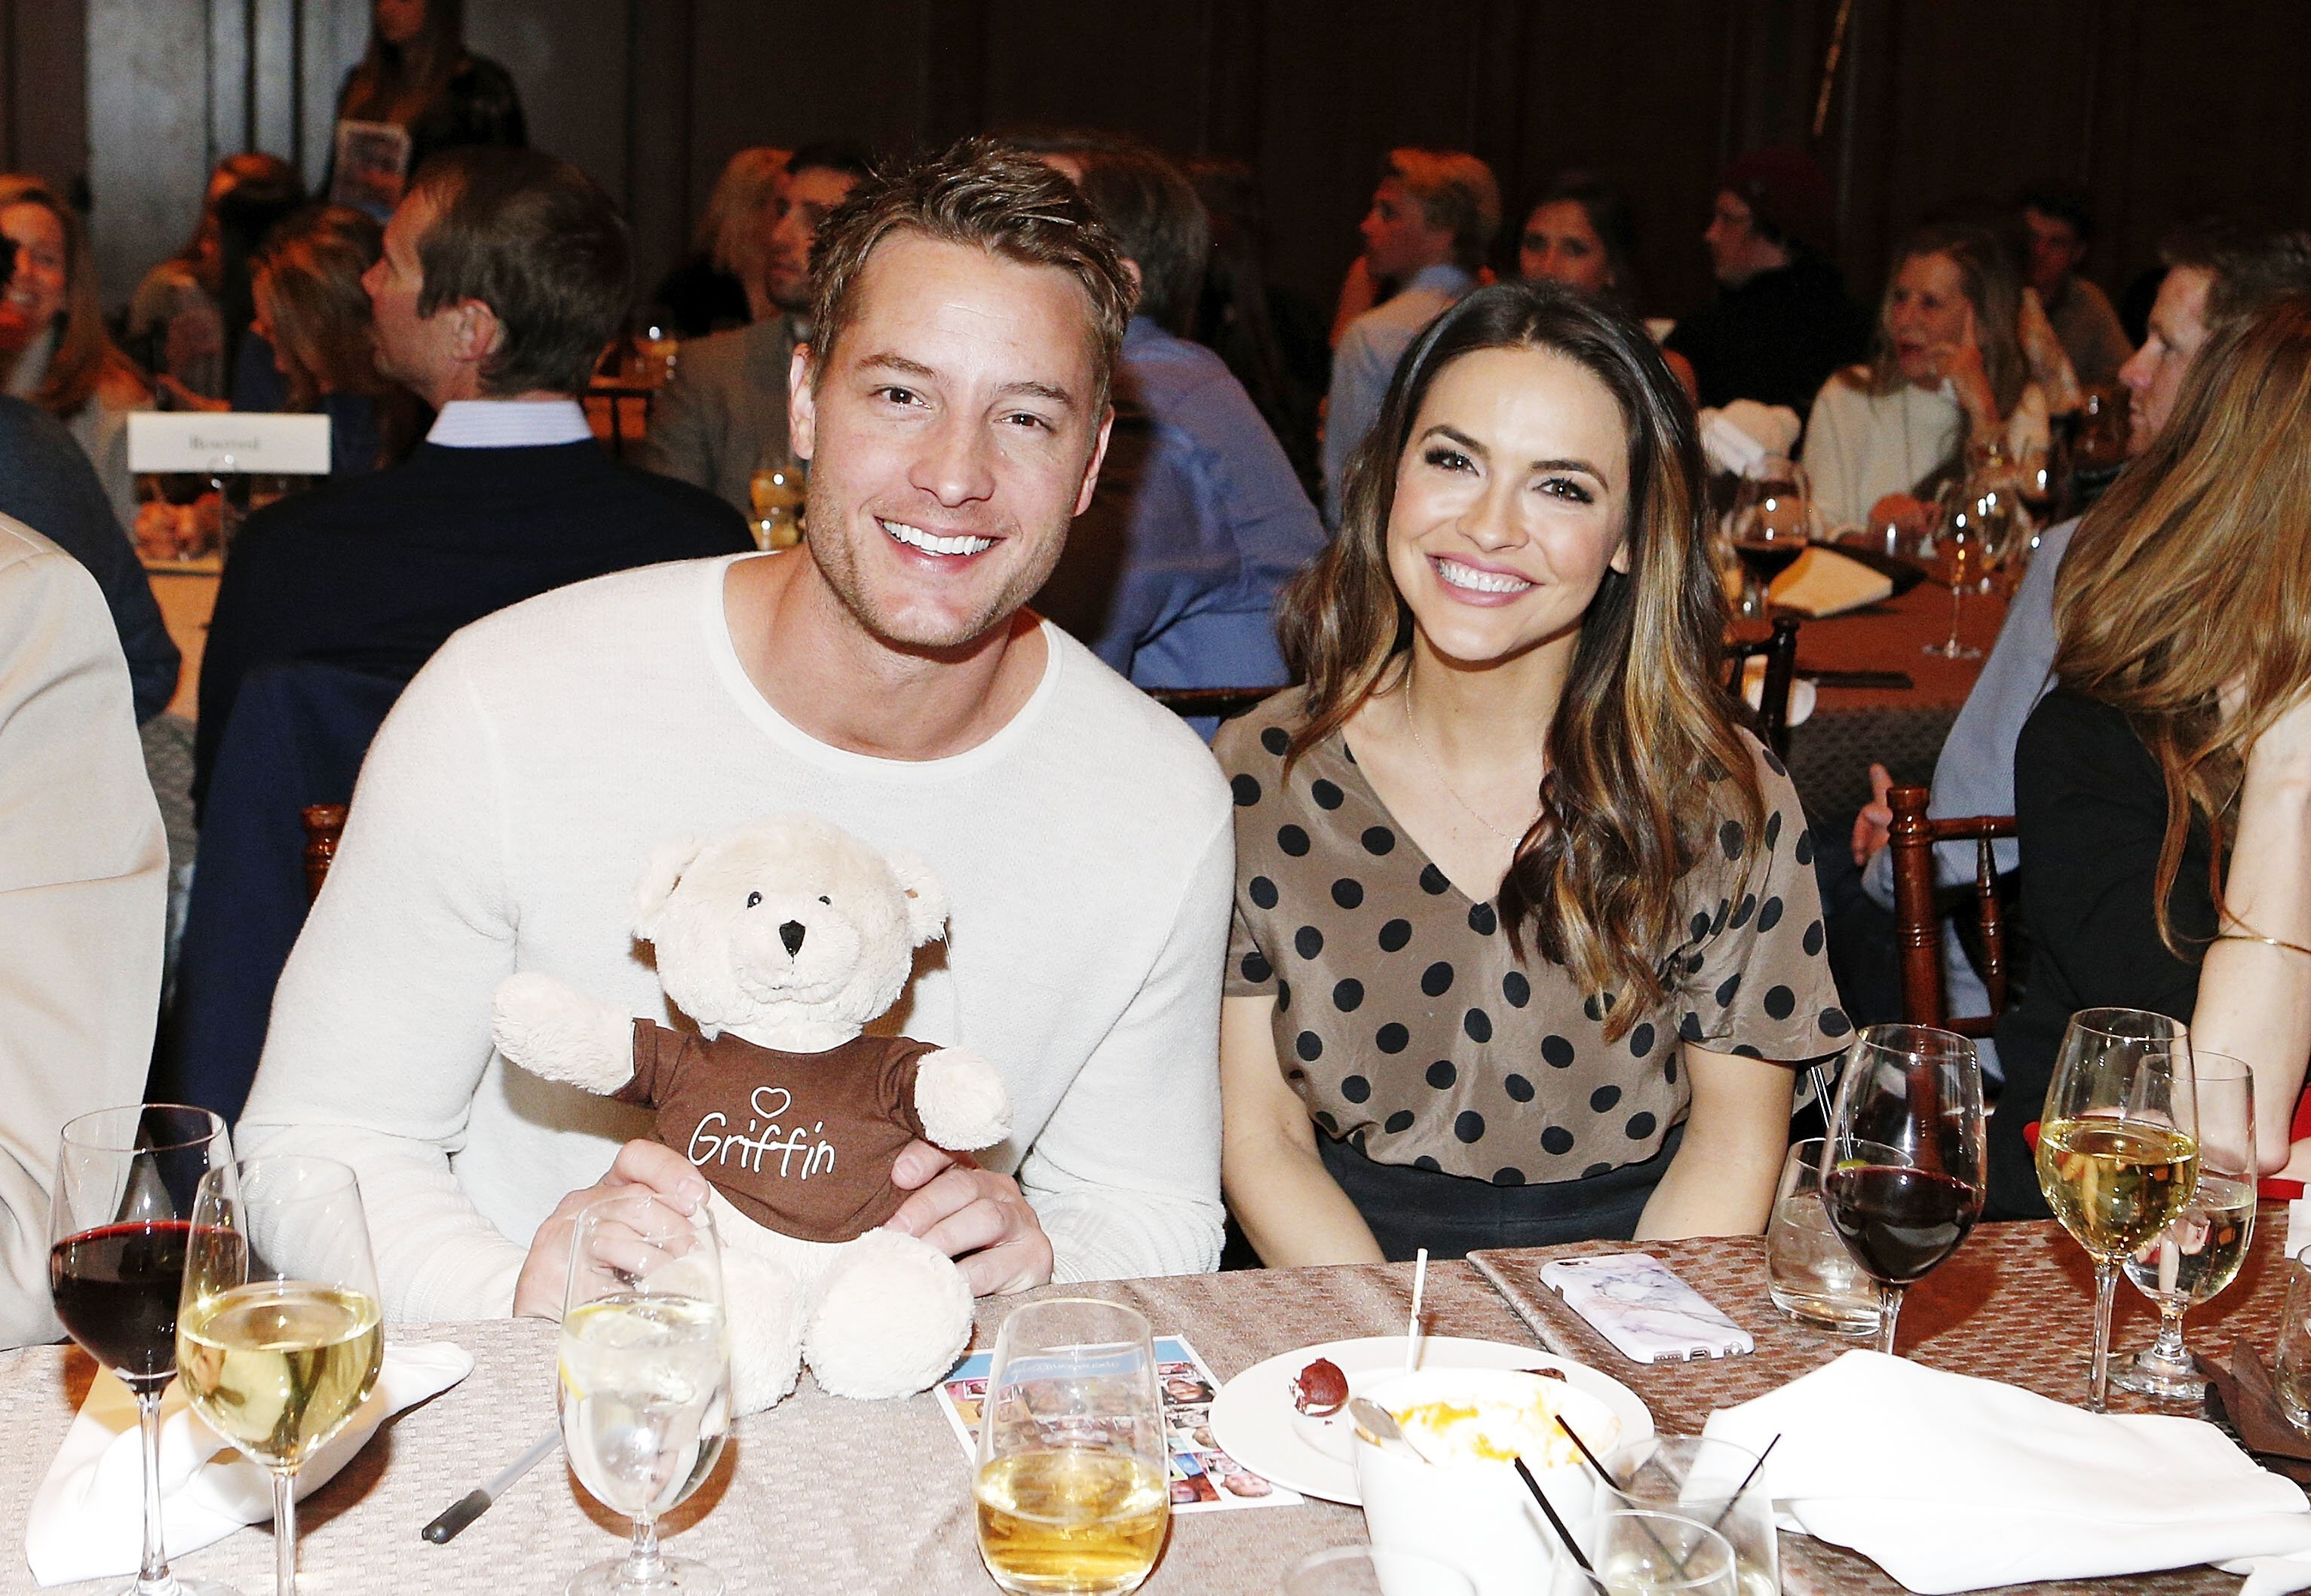 Justin Hartley and Chrishell Stause attend Operation Smile's Celebrity Ski & Smile Challenge Presented by the Rodosky Family on March 11, 2017, in Park City, Utah. | Source: Getty Images.